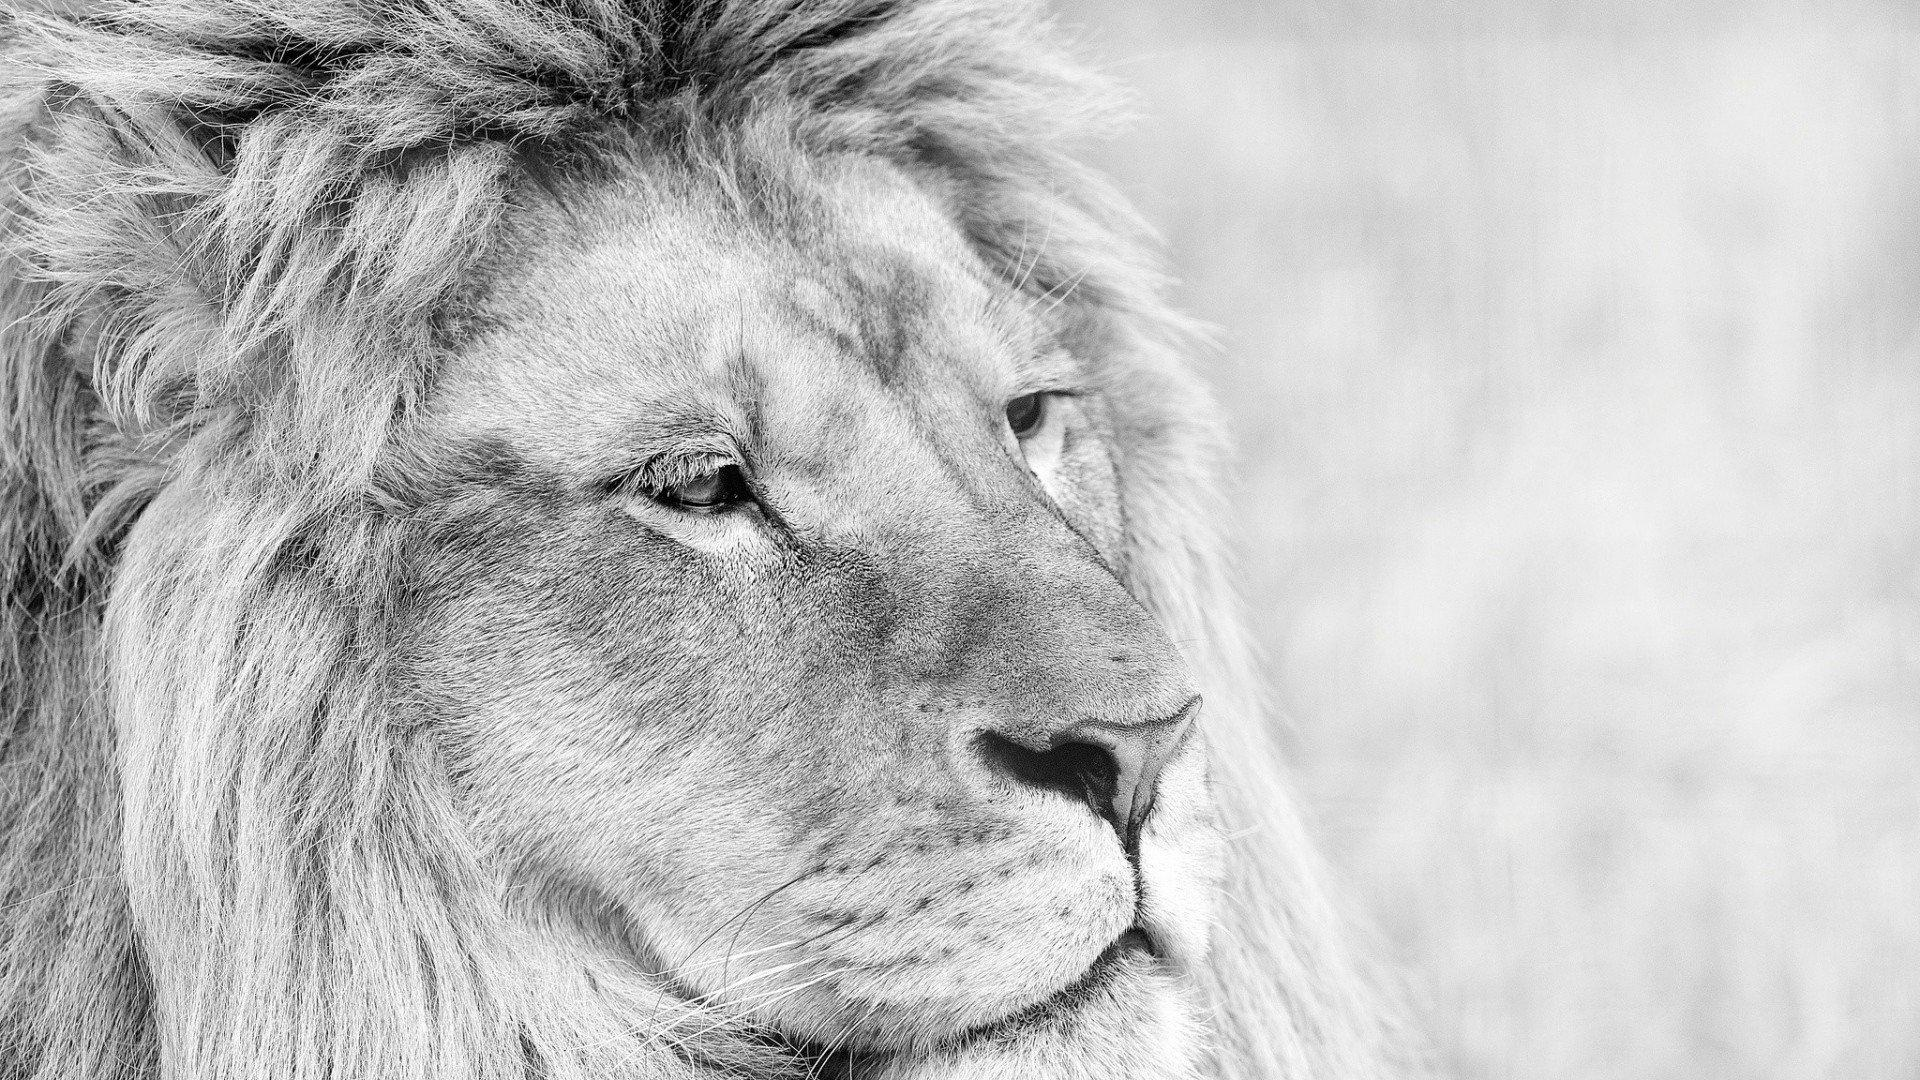 Lion Wallpaper 4k - White Lion Wallpaper 4k , HD Wallpaper & Backgrounds